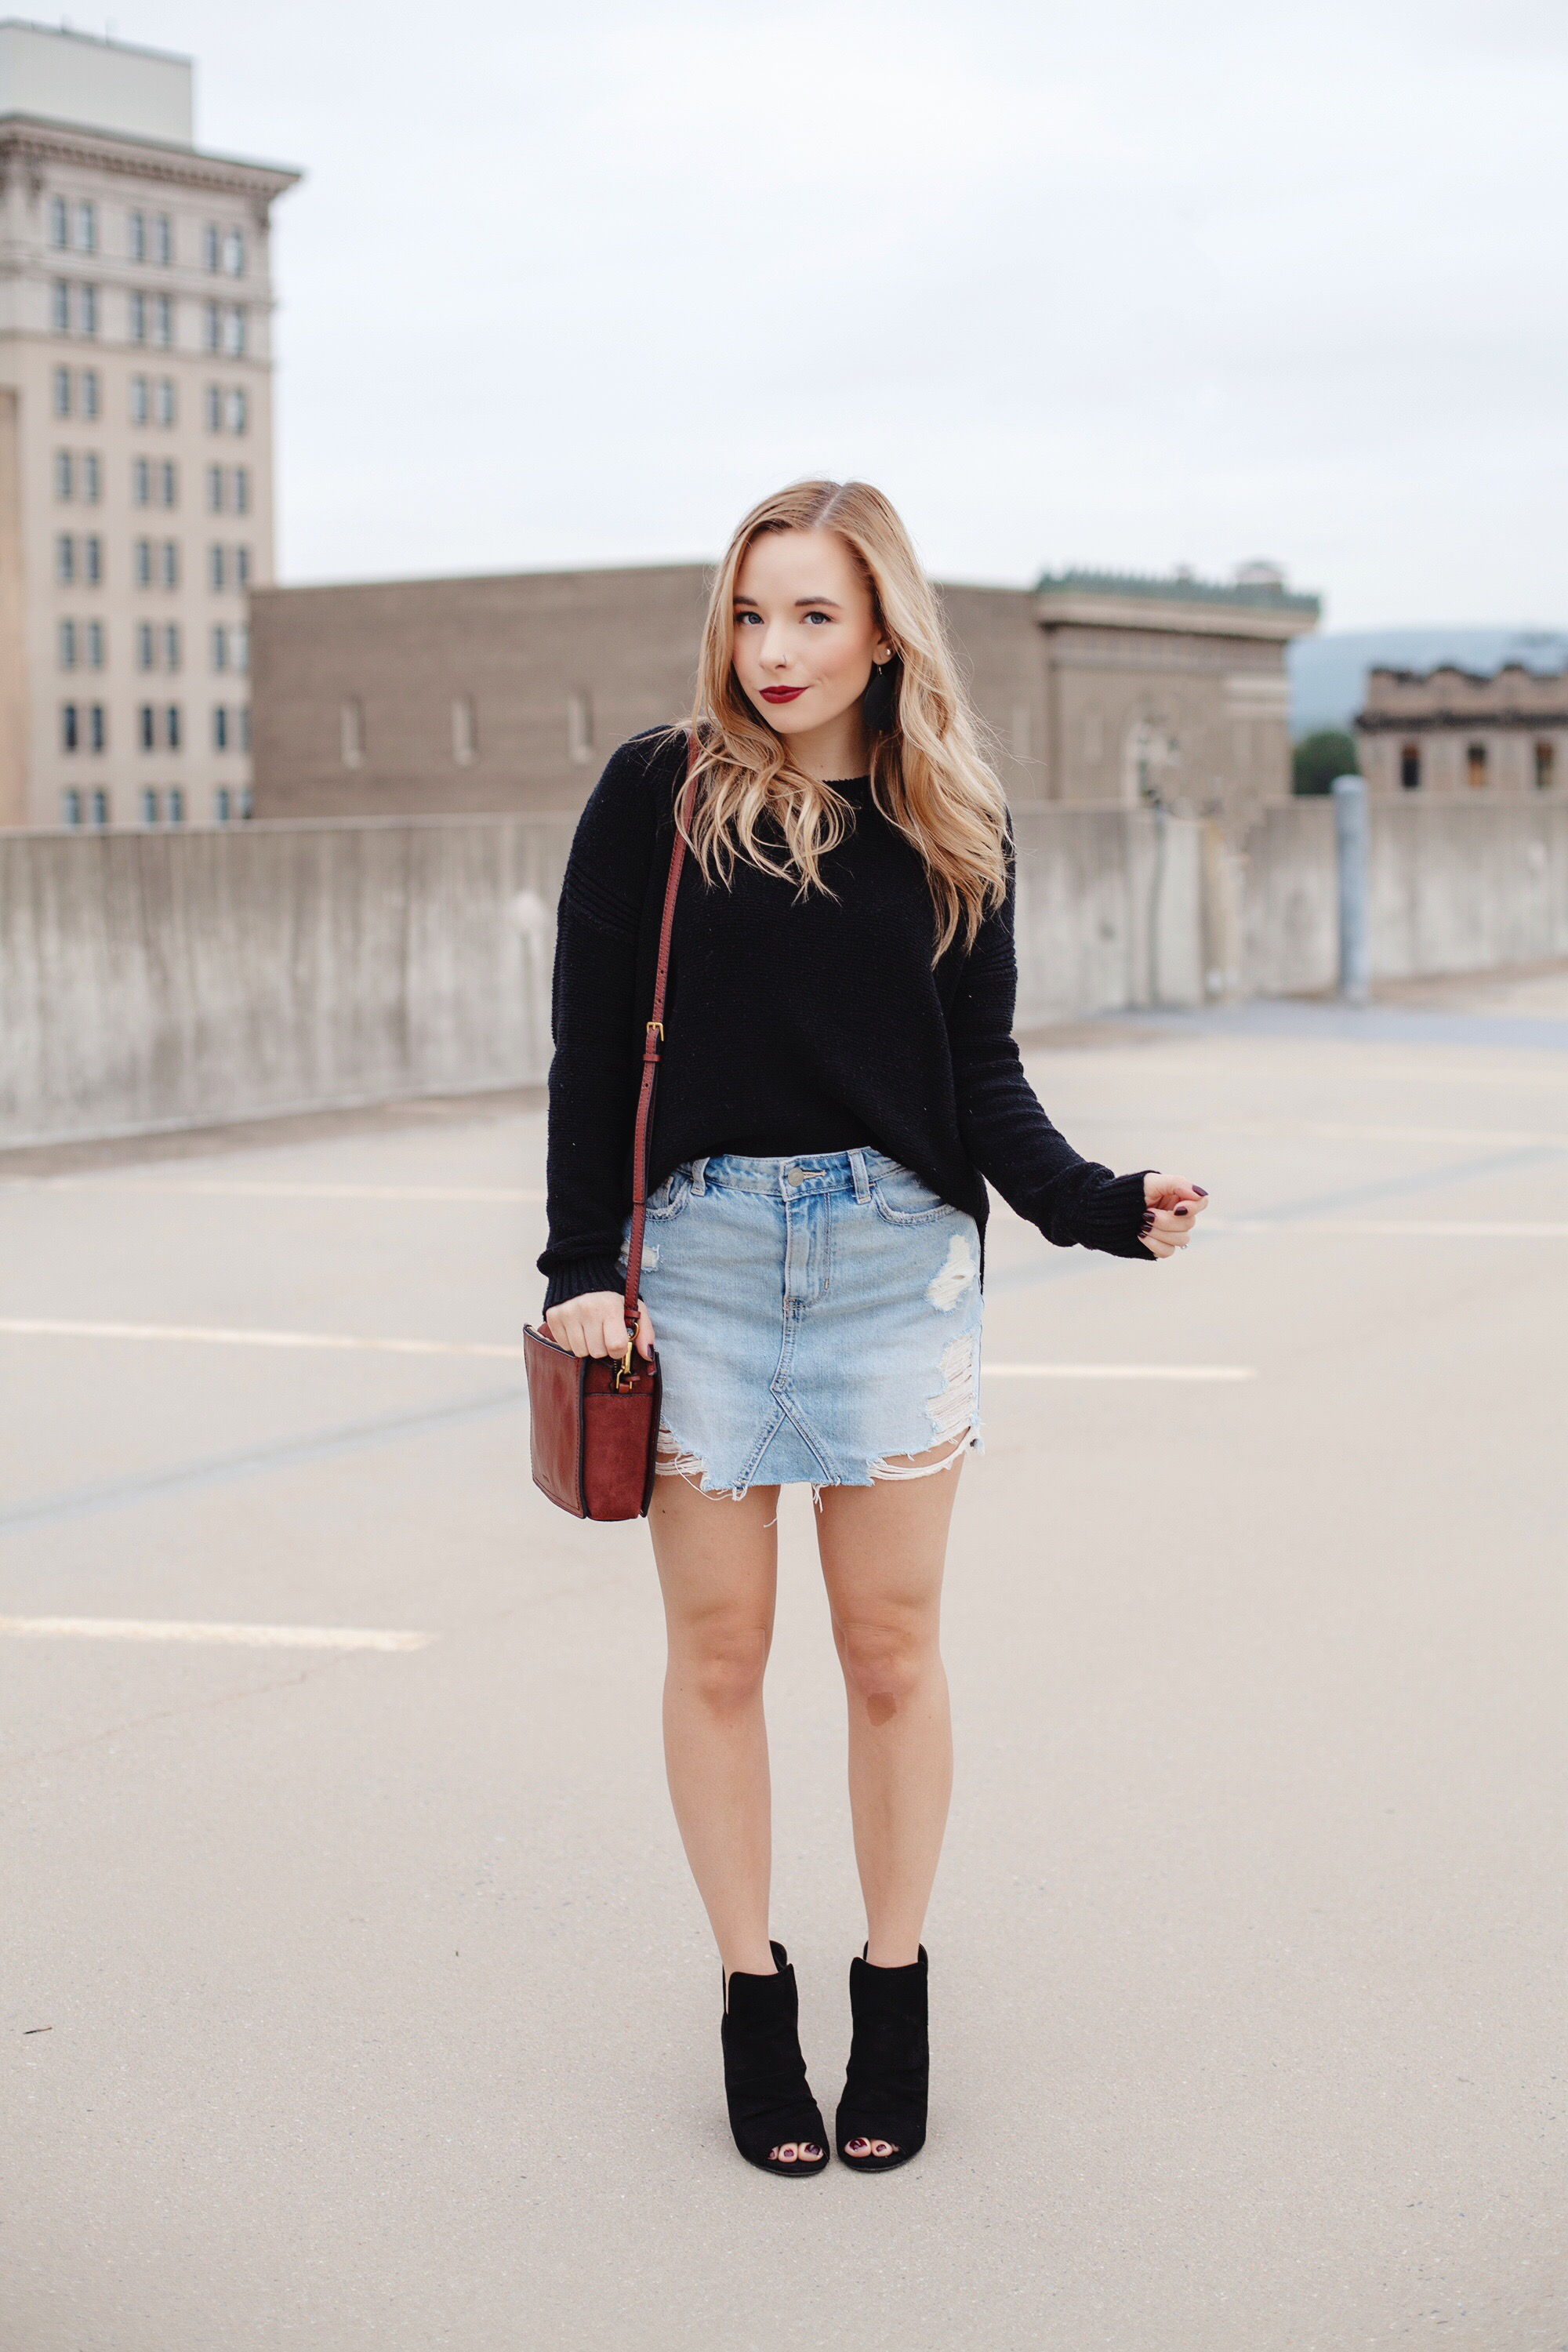 How To Wear A Denim Mini Skirt For Fall